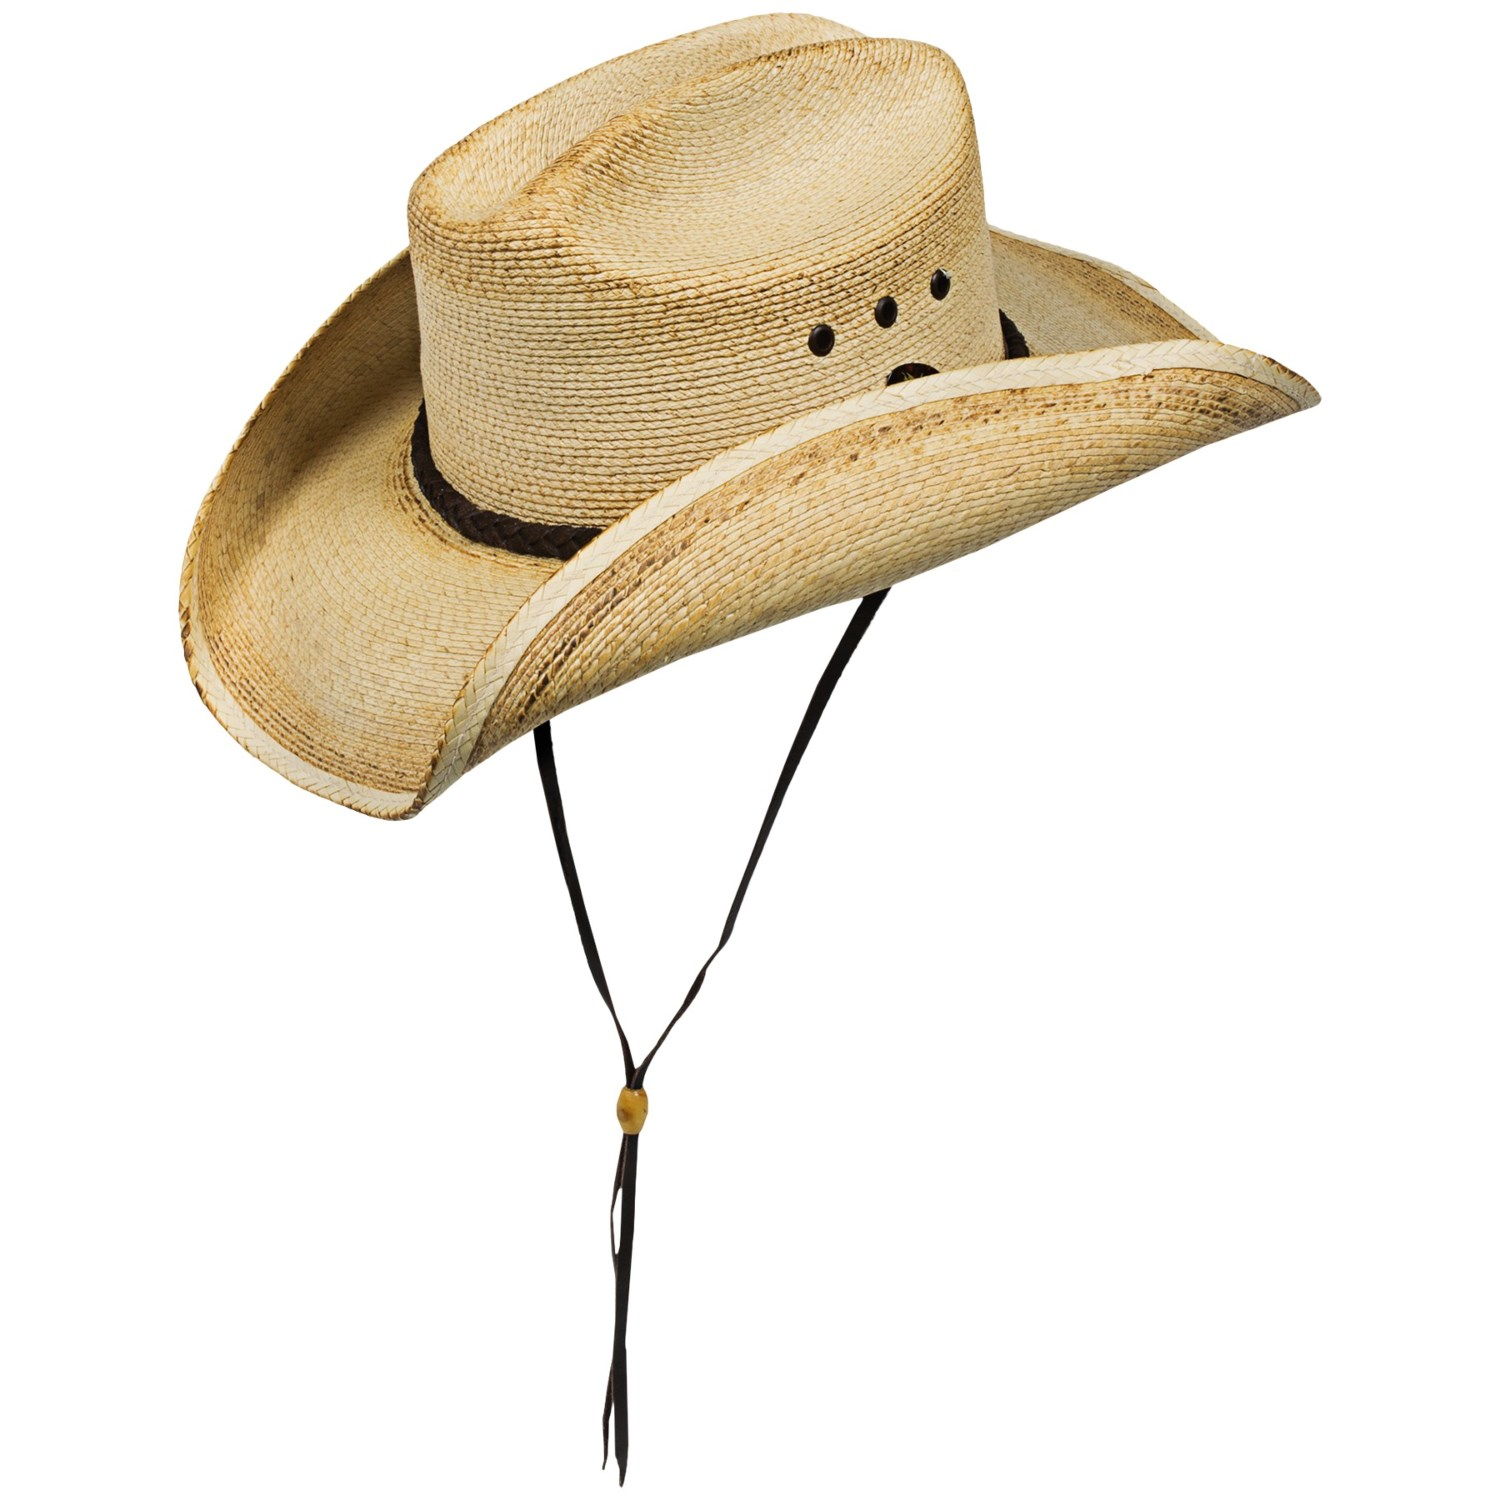 kenny chesney blue chair bay hats arm covers dining room by cowboy hat for men and